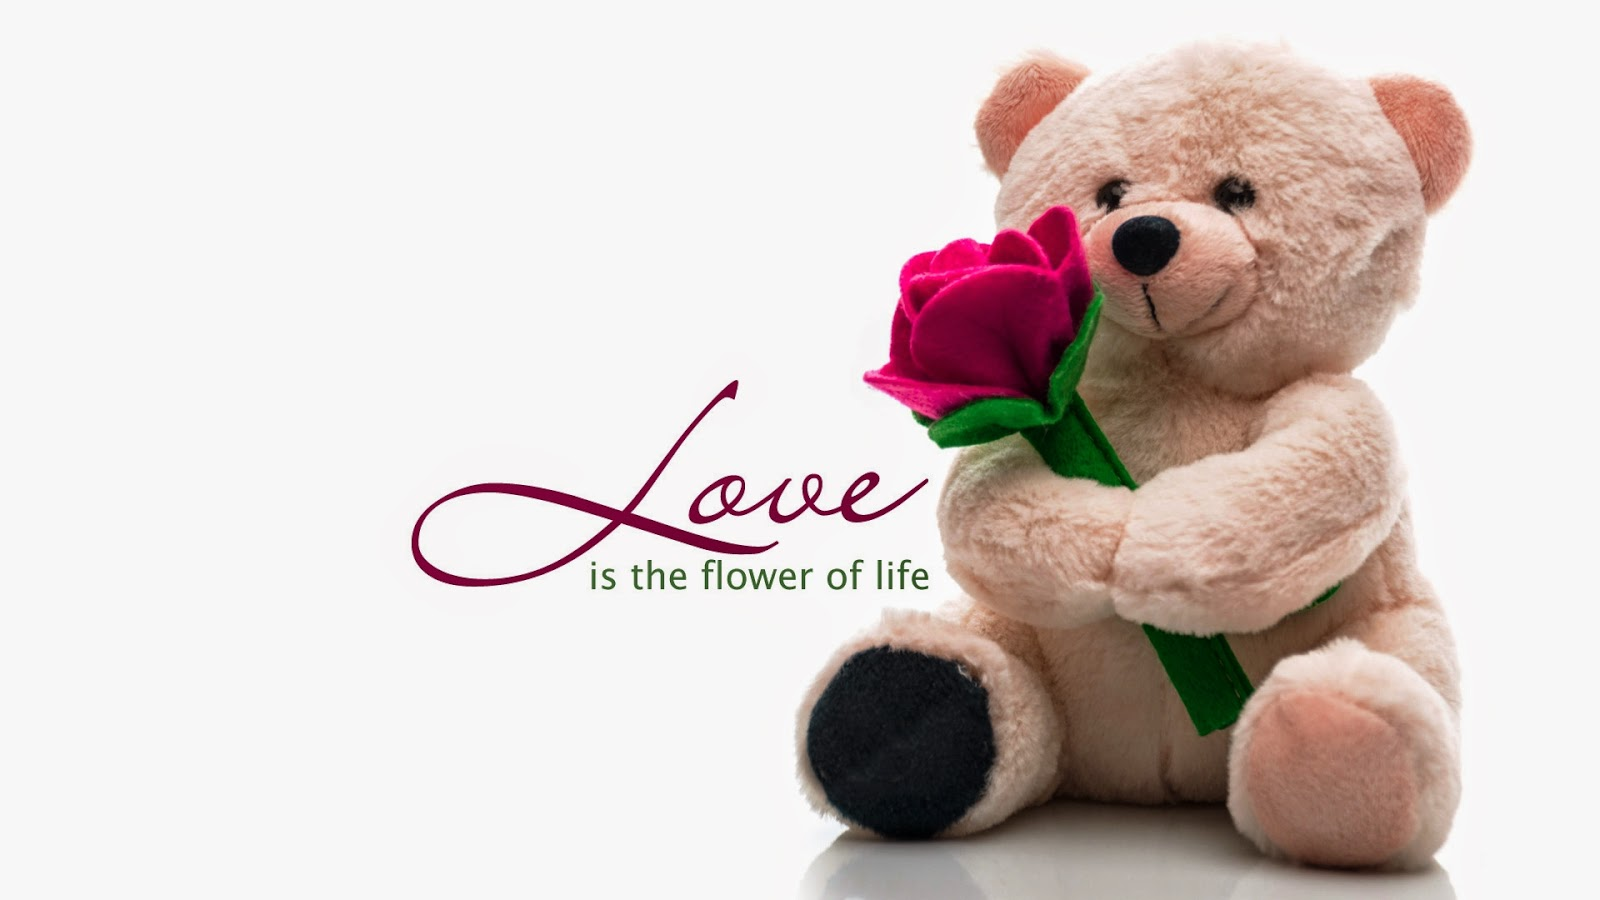 Happy Teddy Day Love Wallpaper For Girlfriend Pics